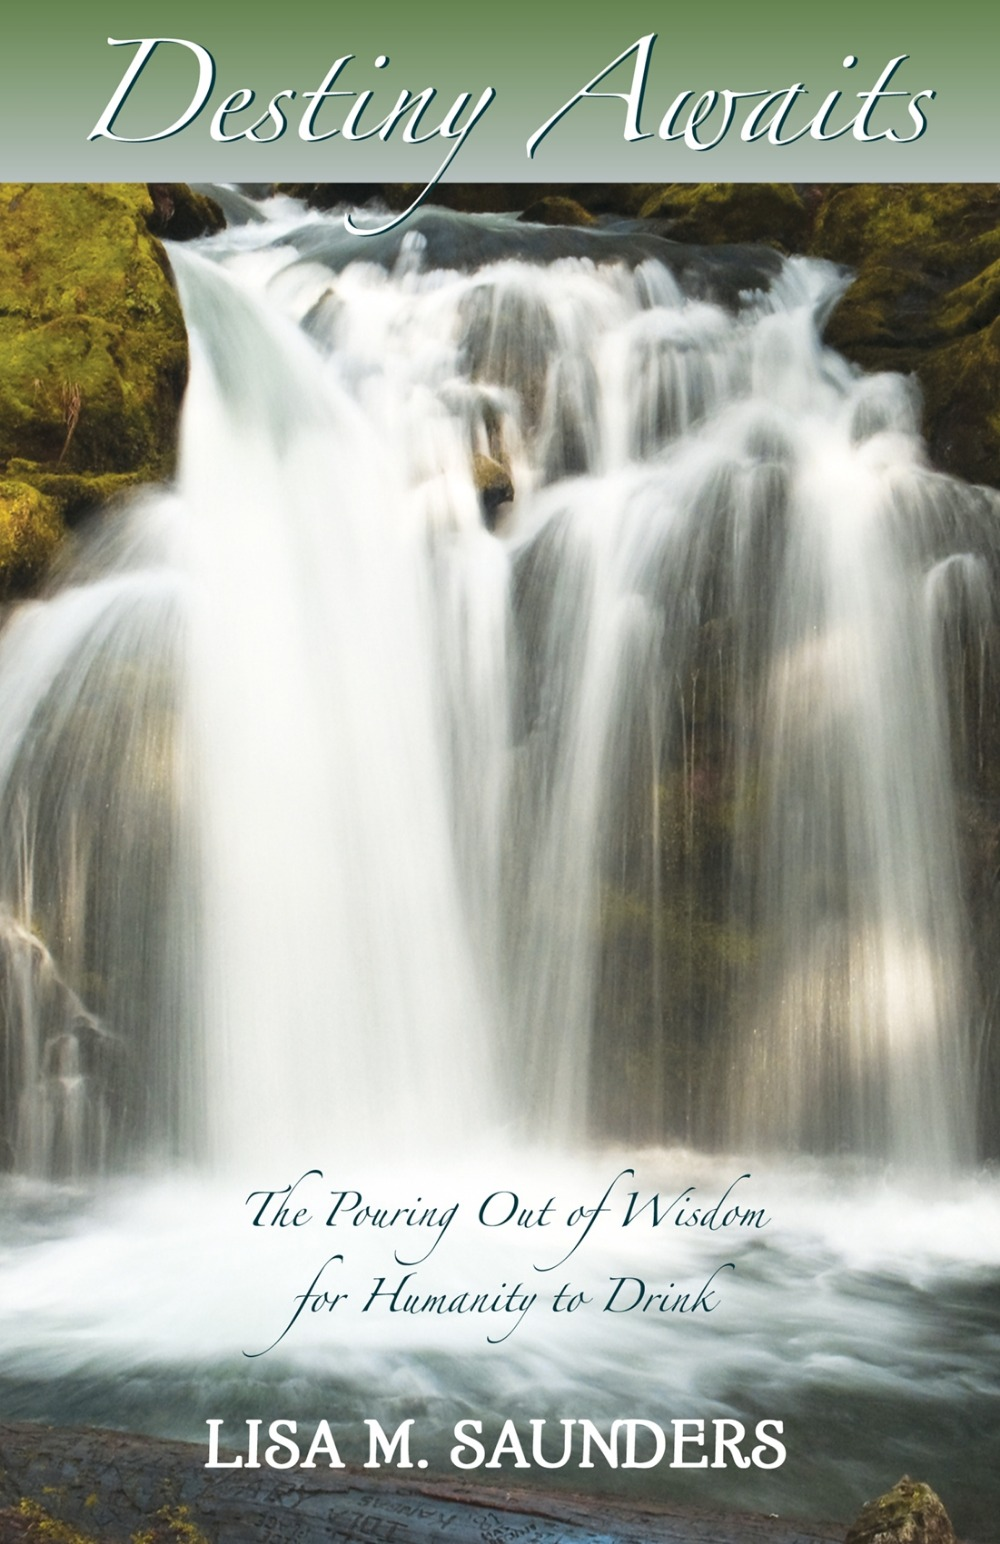 Destiny Awaits; The Pouring out of Wisdom for Humanity to Drink-ebook